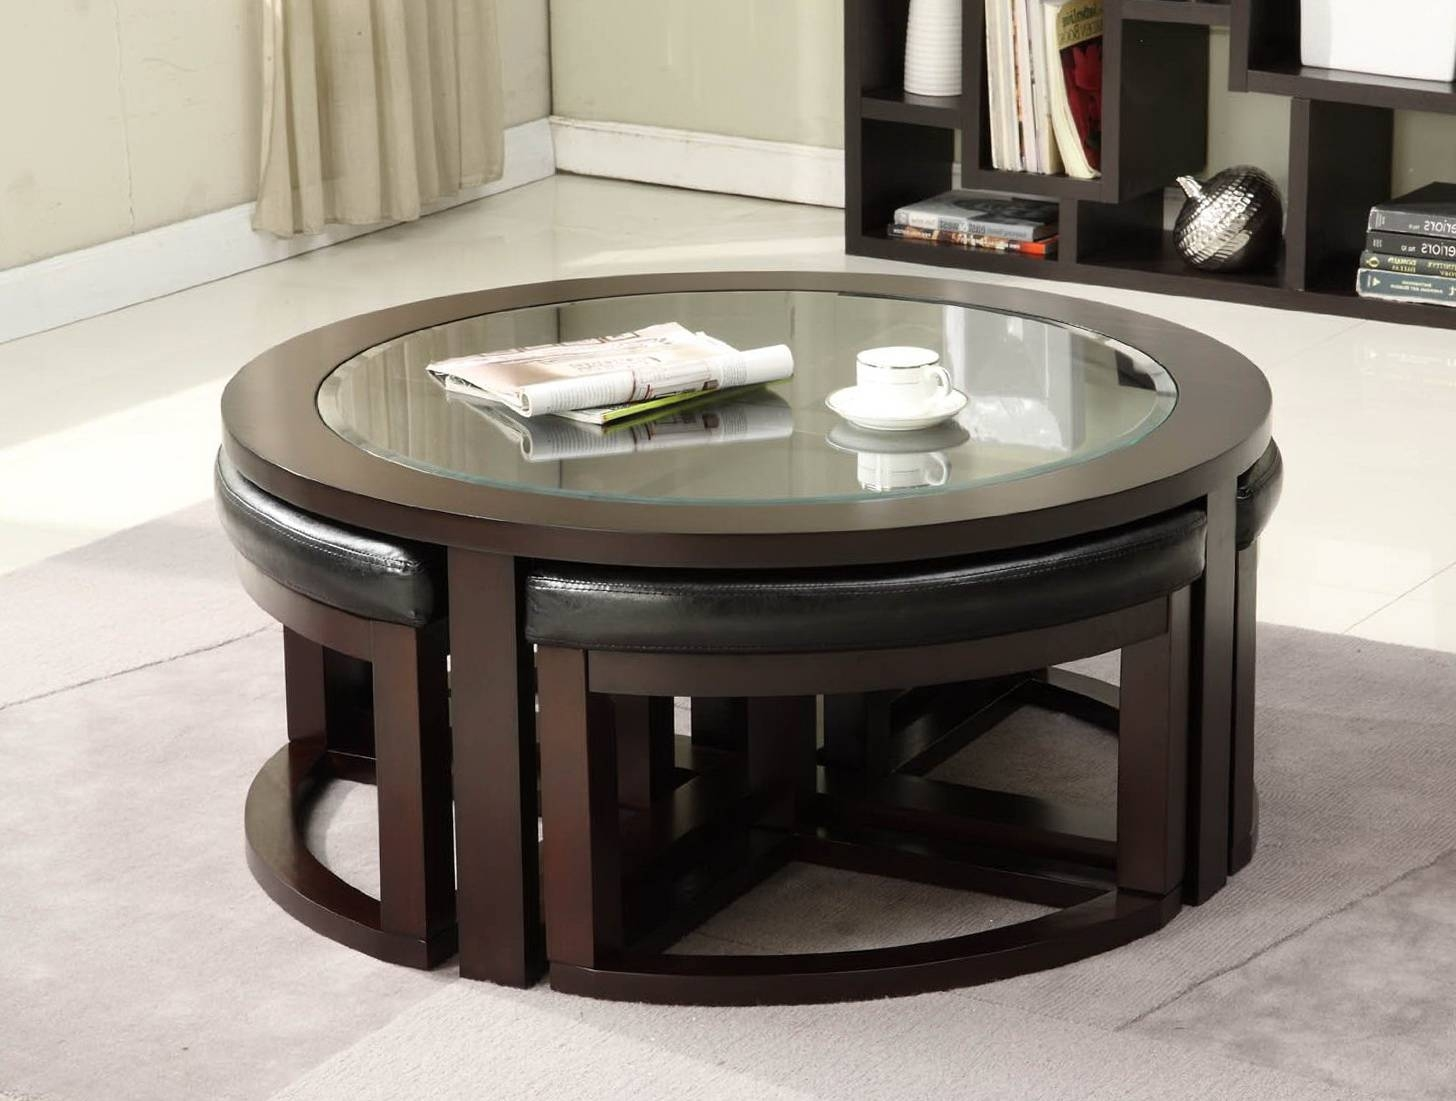 Round Coffee Table With Pull Out Seats | Coffee Tables Decoration throughout Round Coffee Tables With Storage (Image 24 of 30)